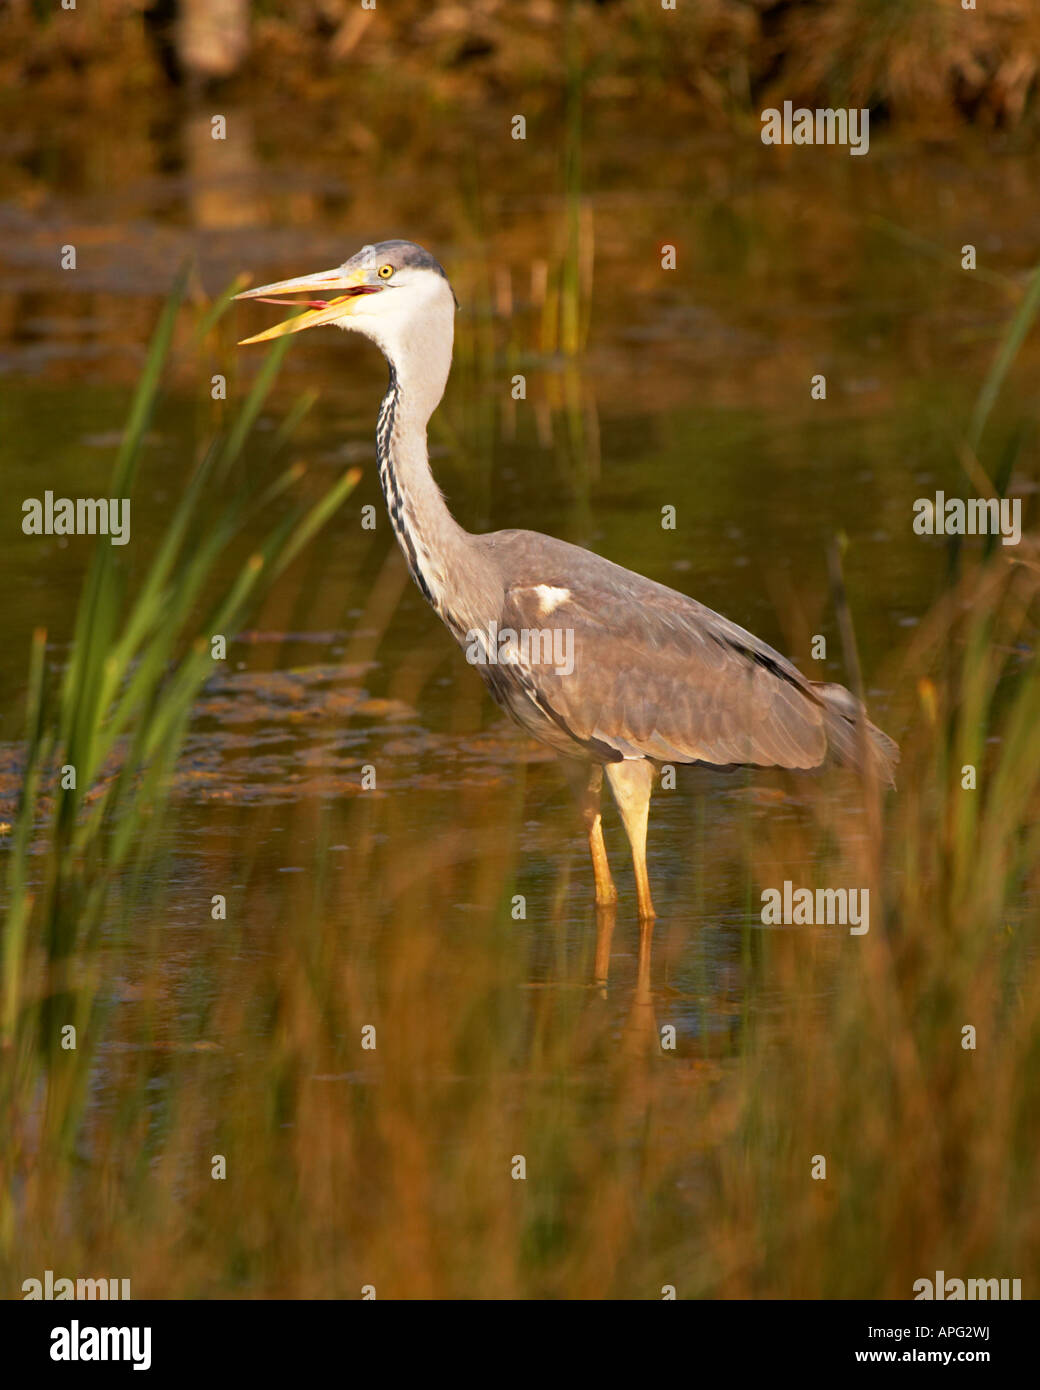 heron showing tounge in reeds in pond - Stock Image